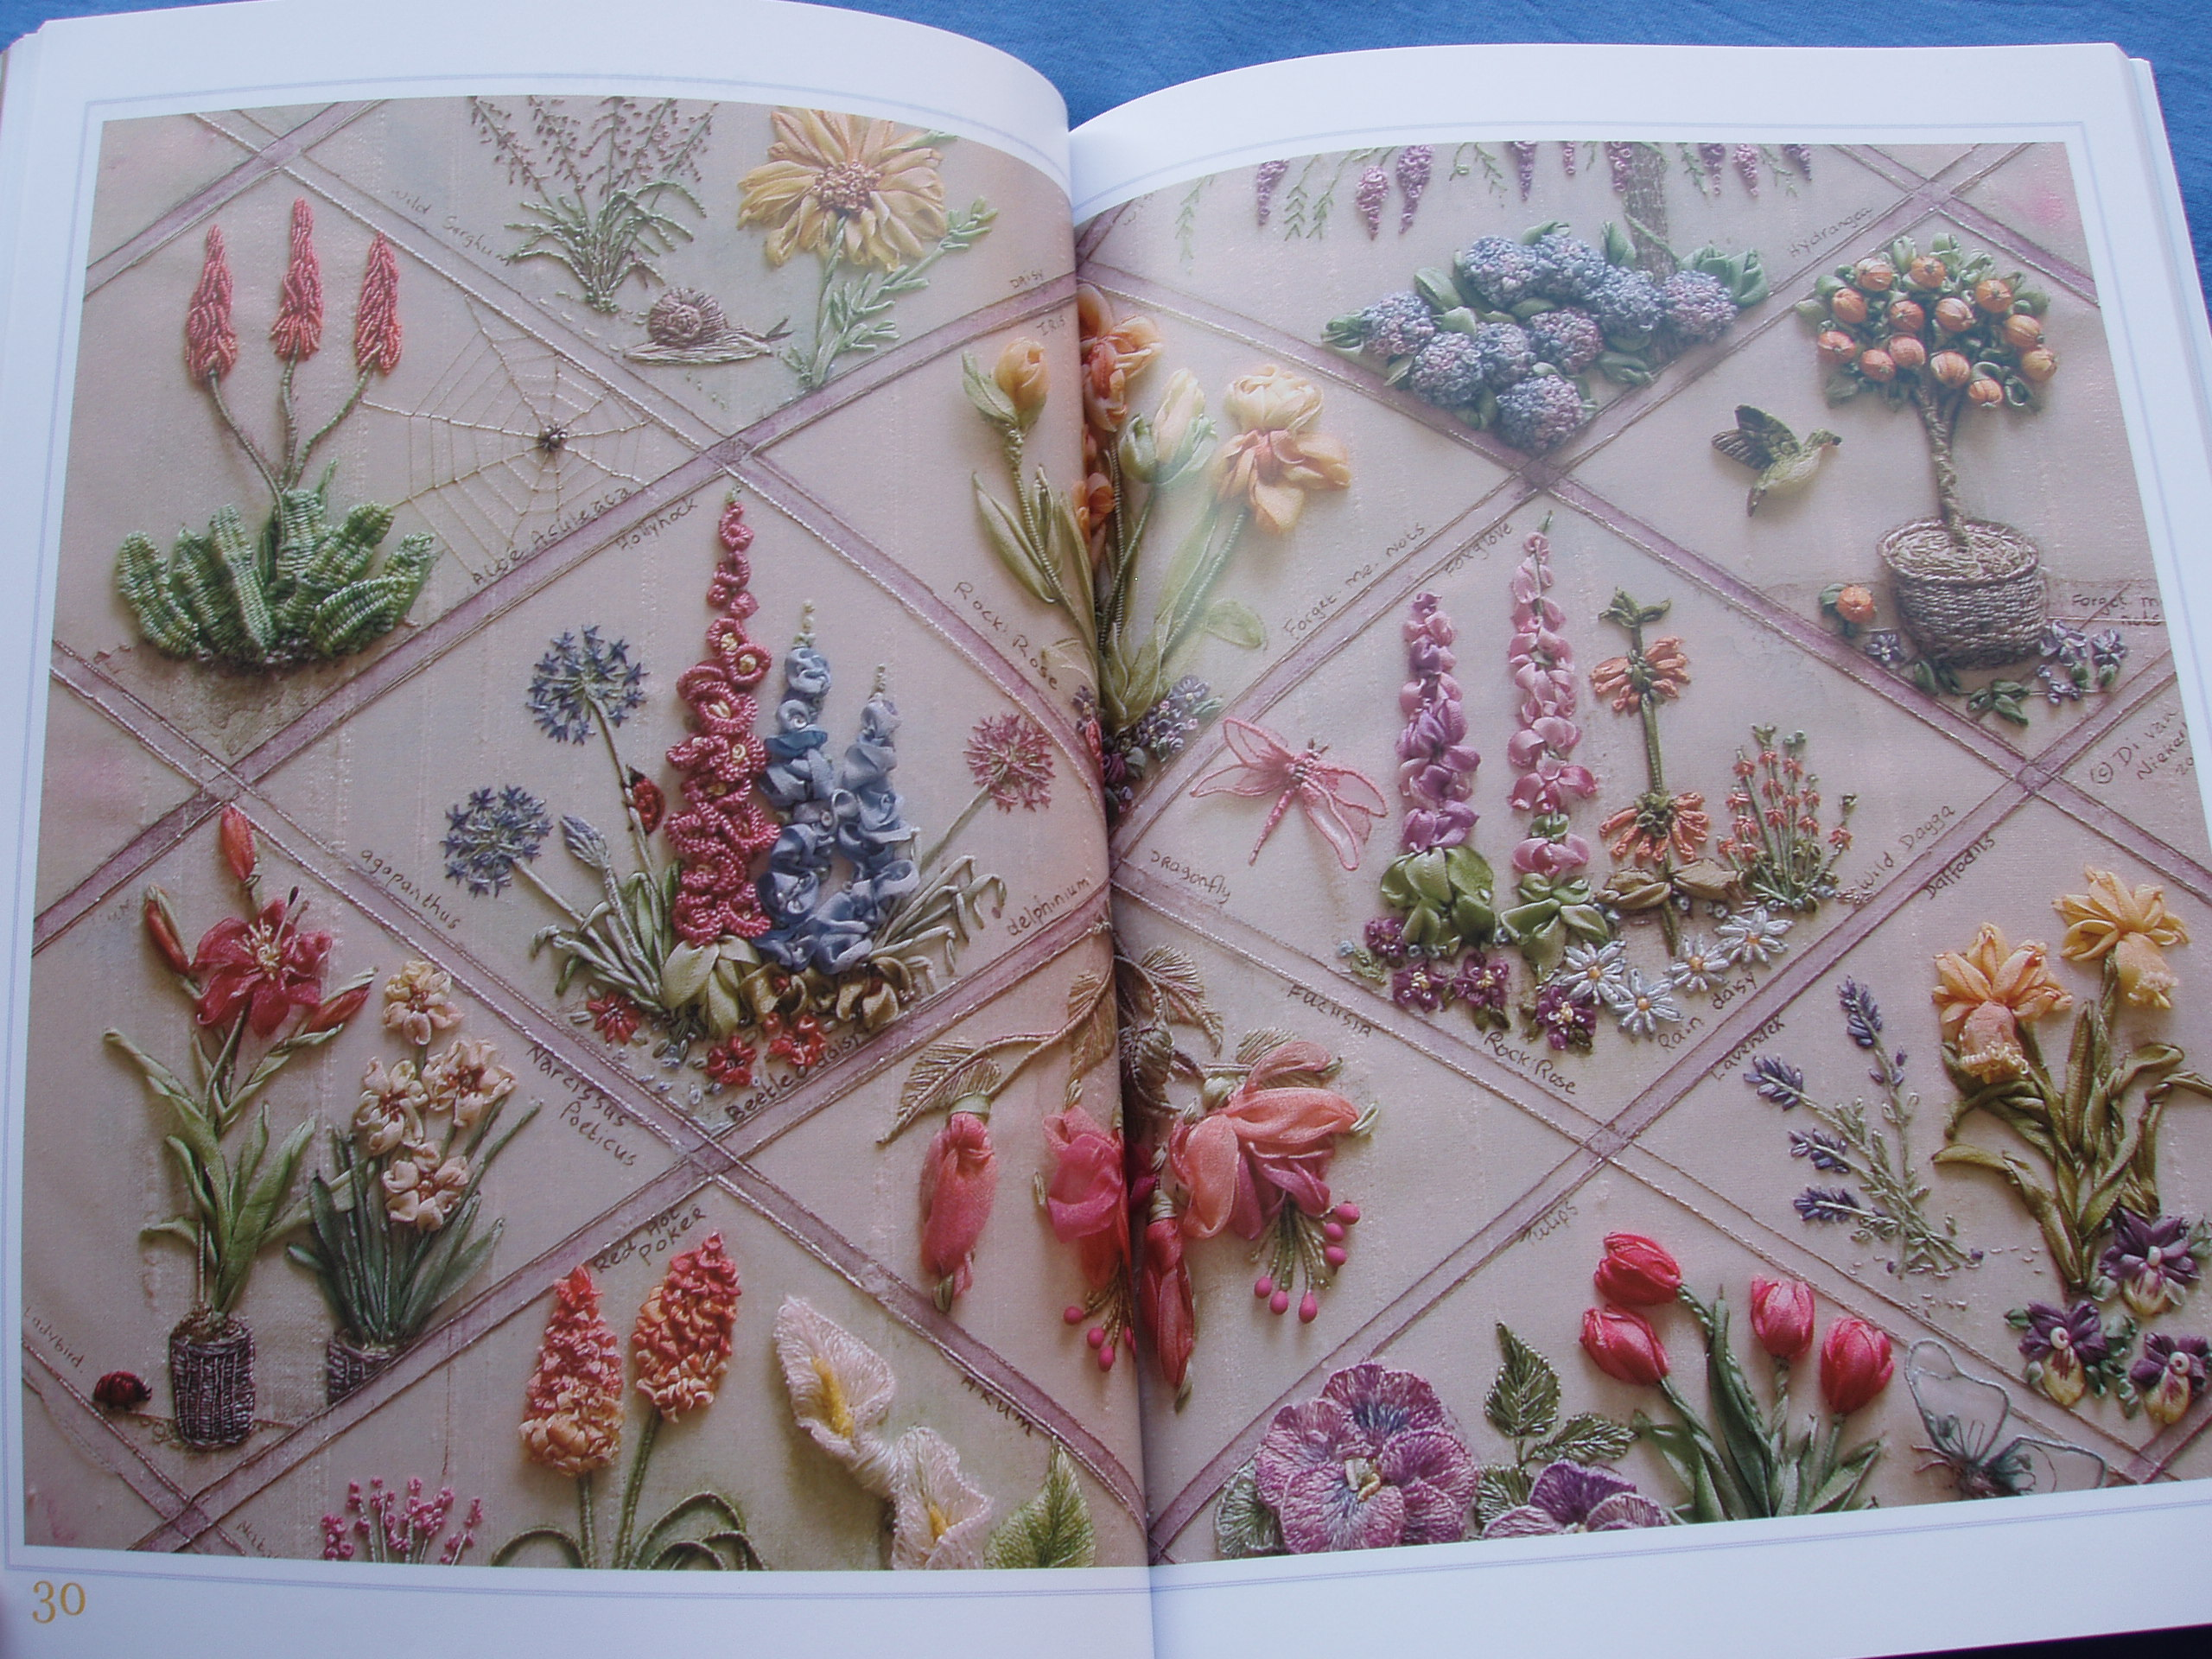 Flowers and gardens embroidery worksofhands´ library